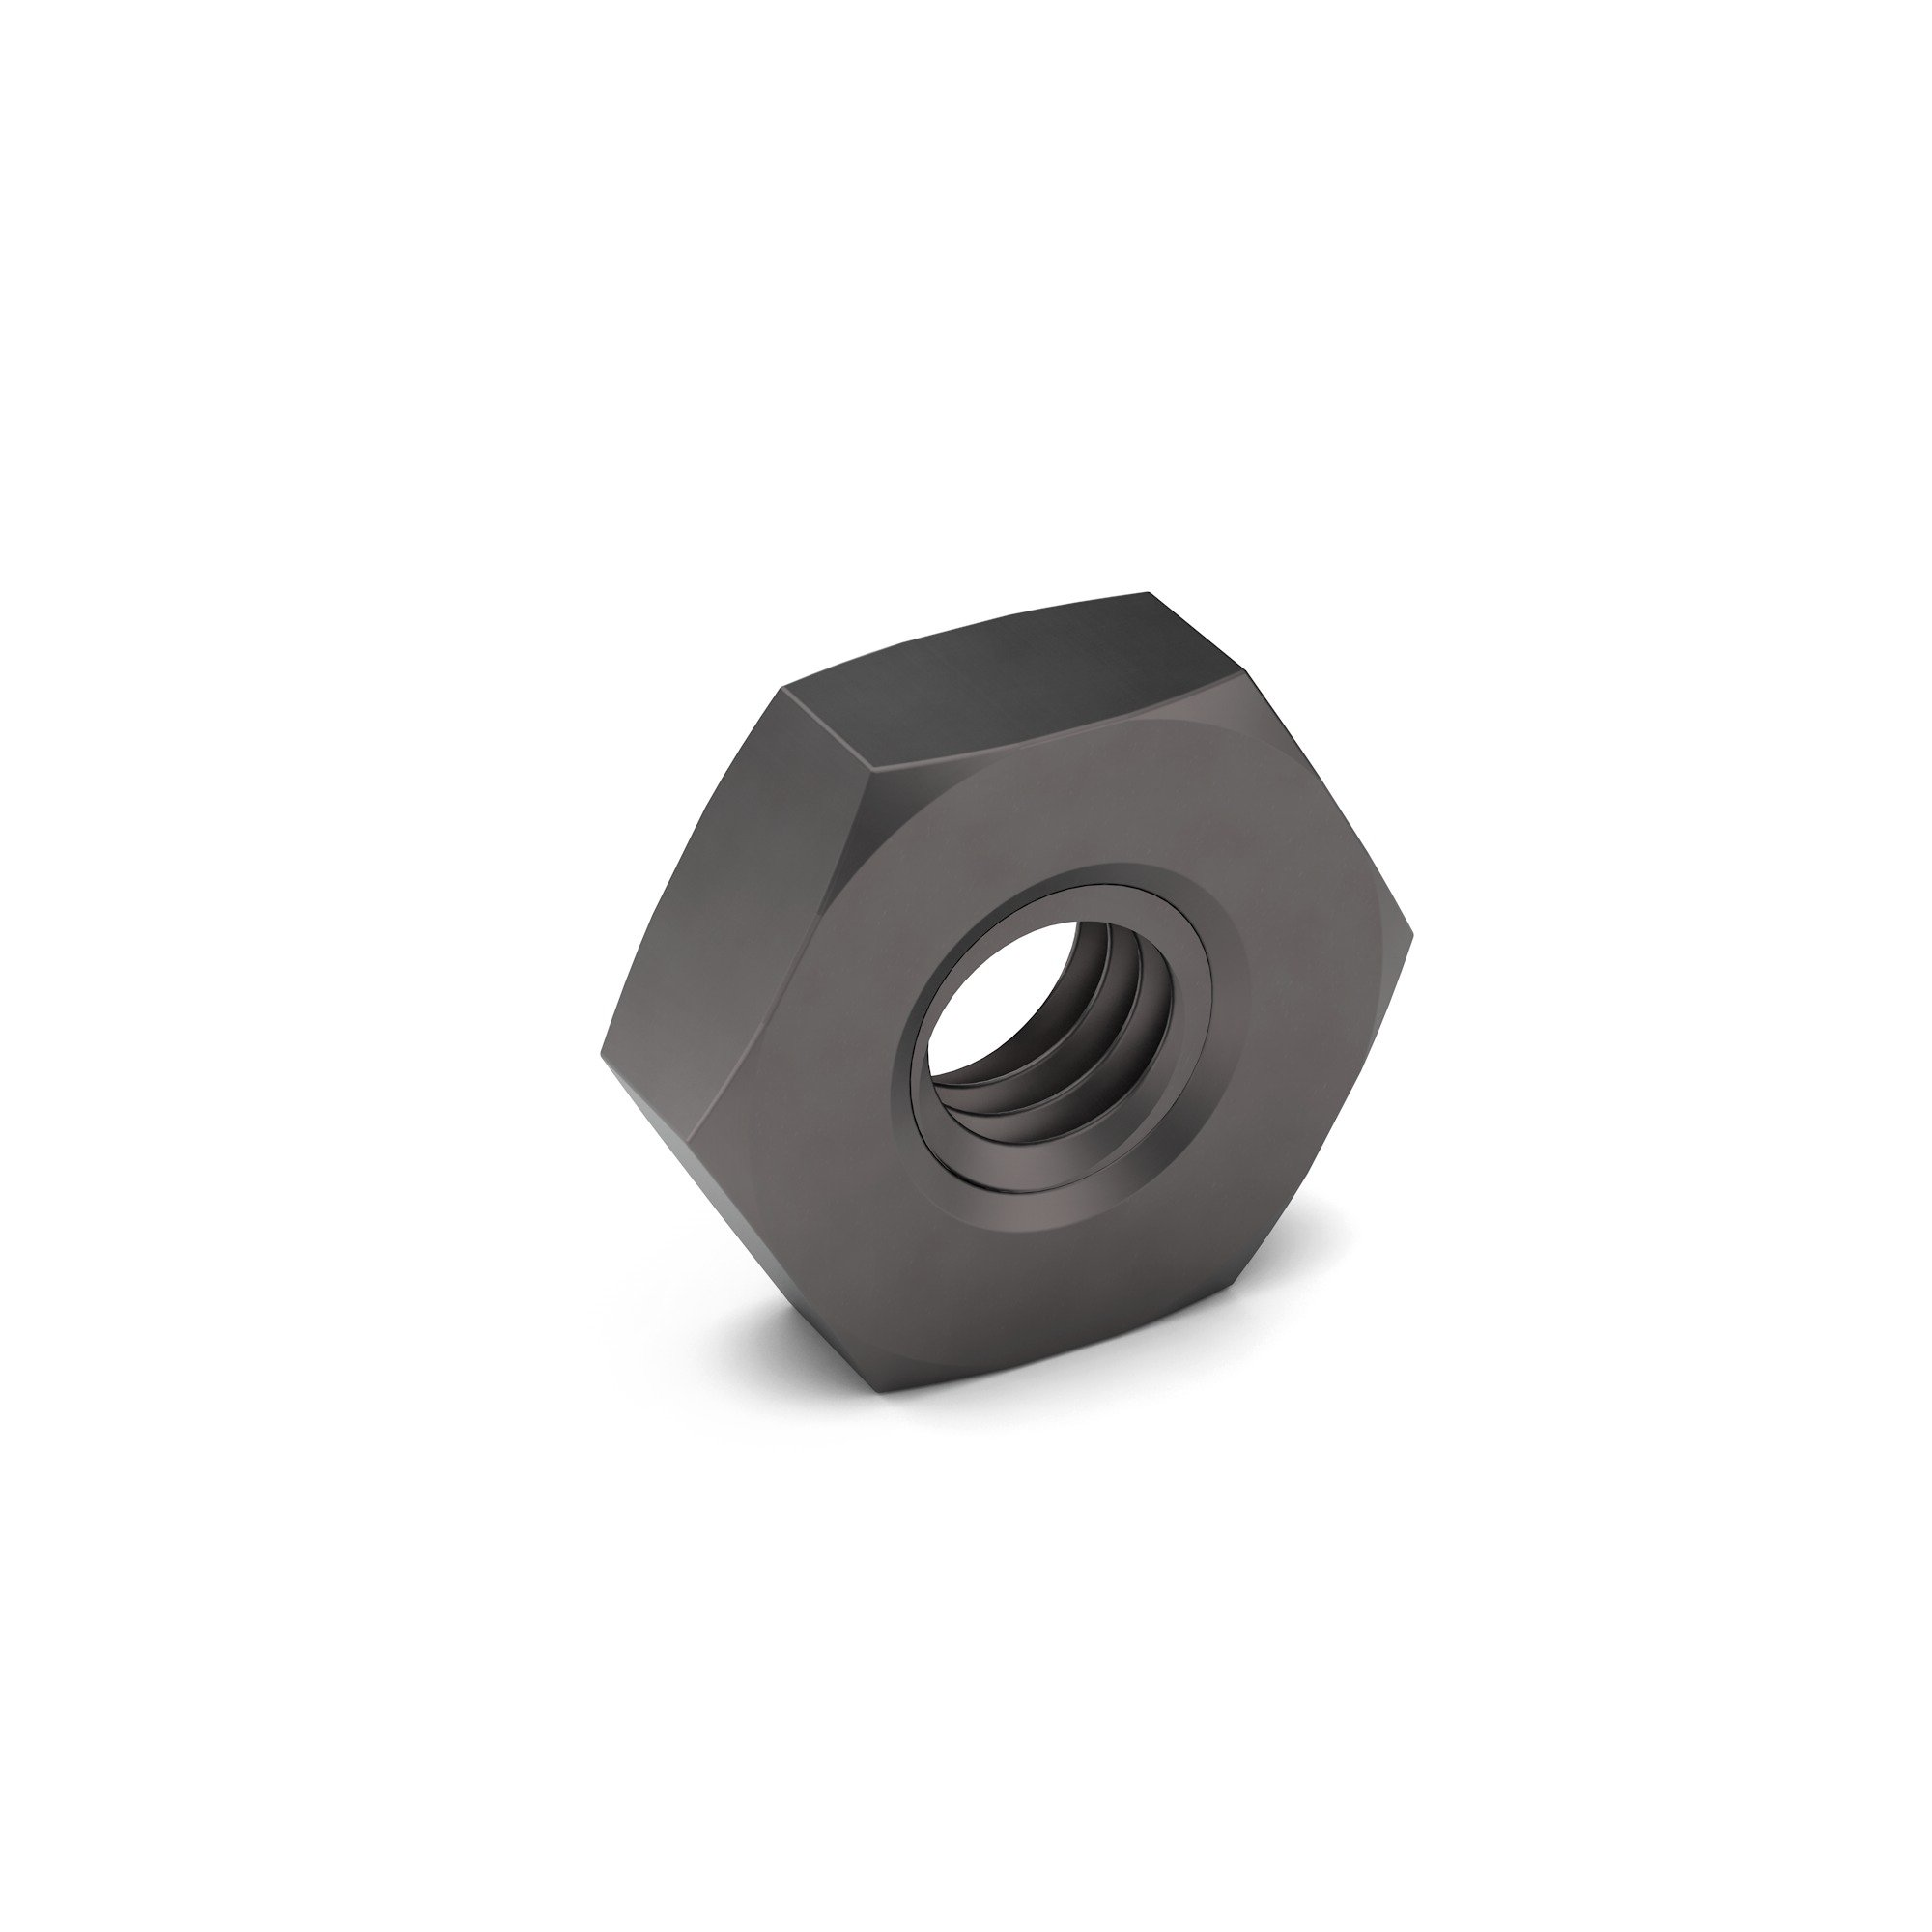 3-8 A194 2H Heavy Hex Jam Nut Plain Finish | Earnest Machine Products